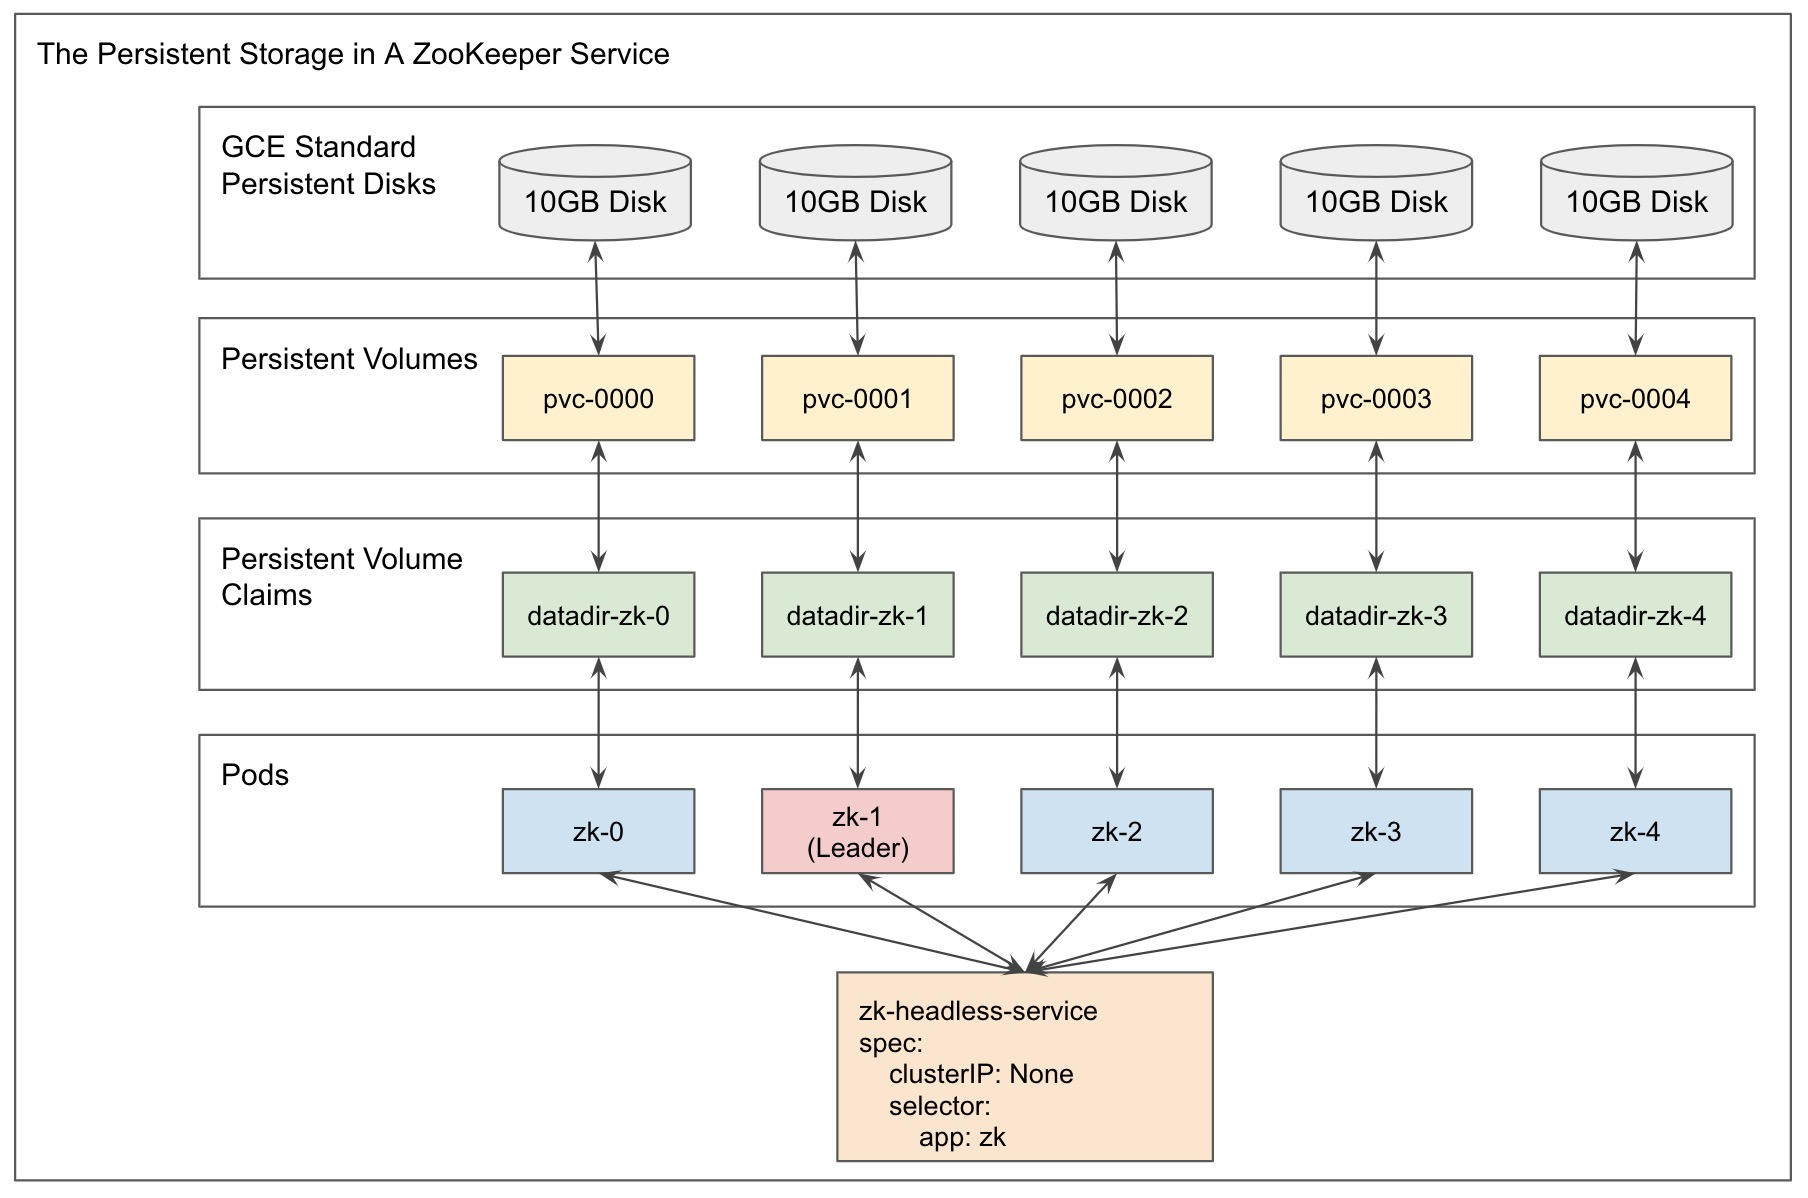 The Persistent Storage in the Zookeeper Service